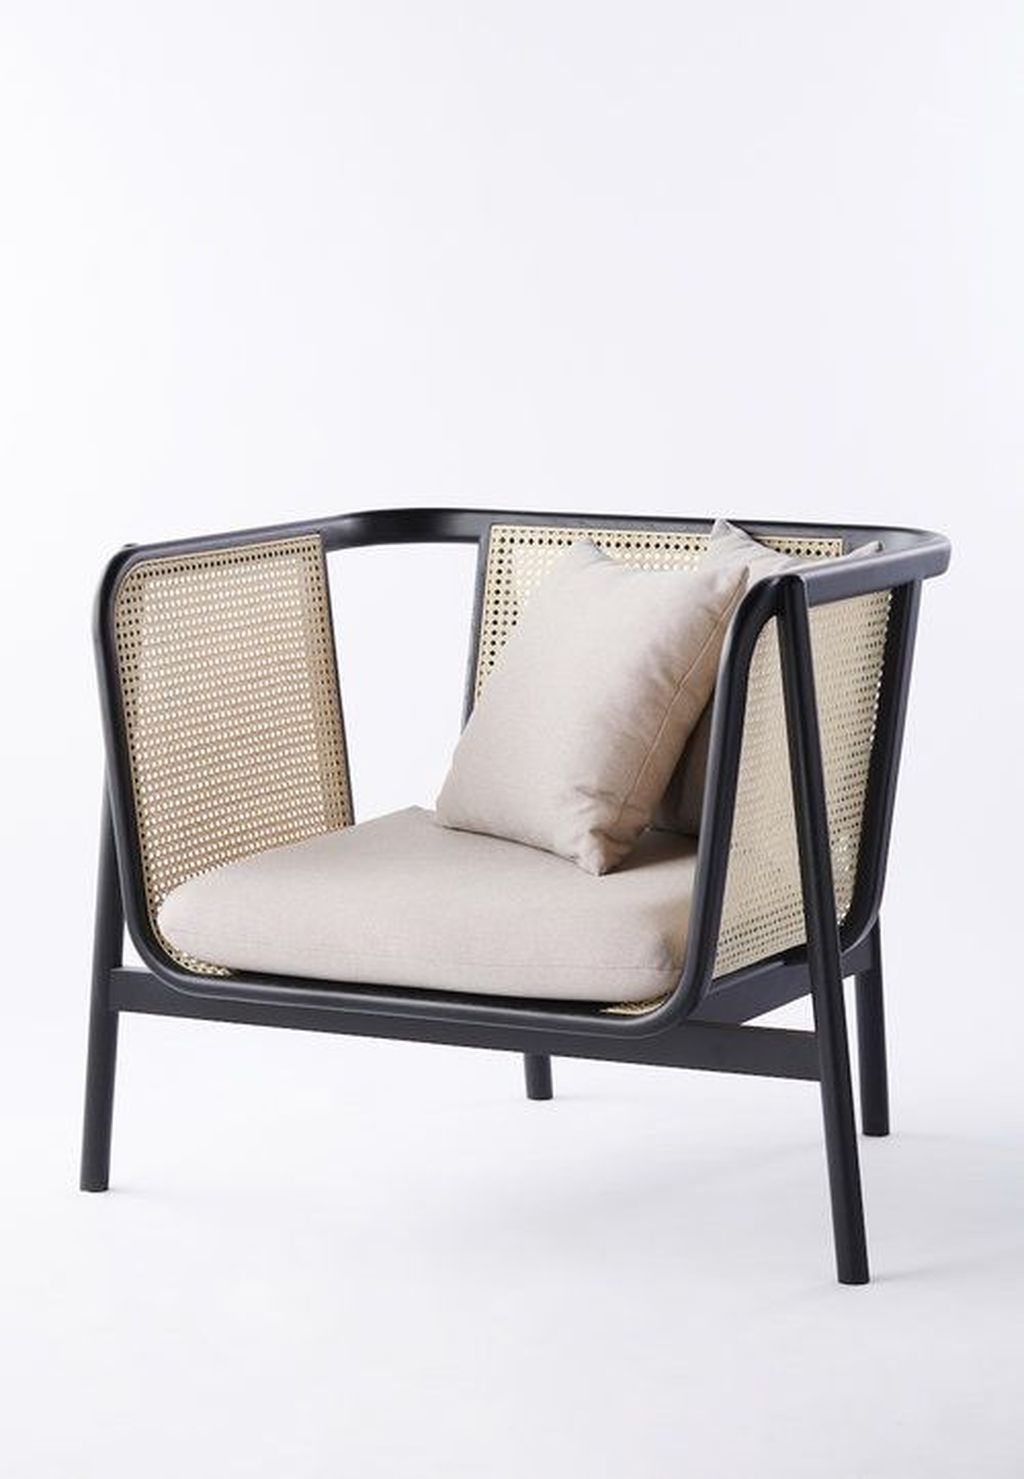 20 Comfy Outdoor Chair Furniture Design Ideas Trenduhome Cane Sofa Furniture Chair Outdoor Chairs